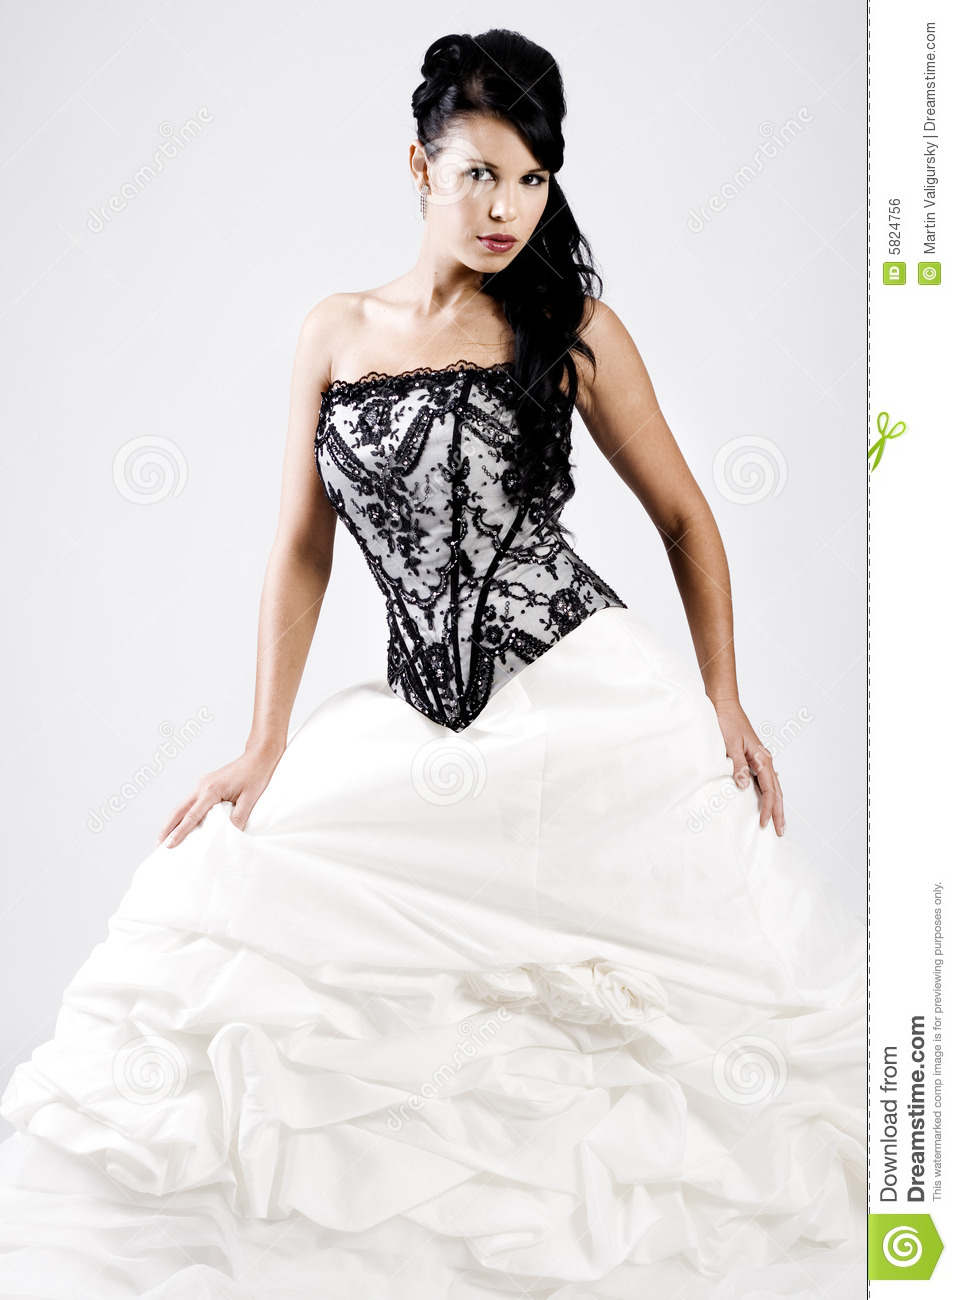 Young bride in black and white wedding dress royalty free for Wedding dresses for young brides